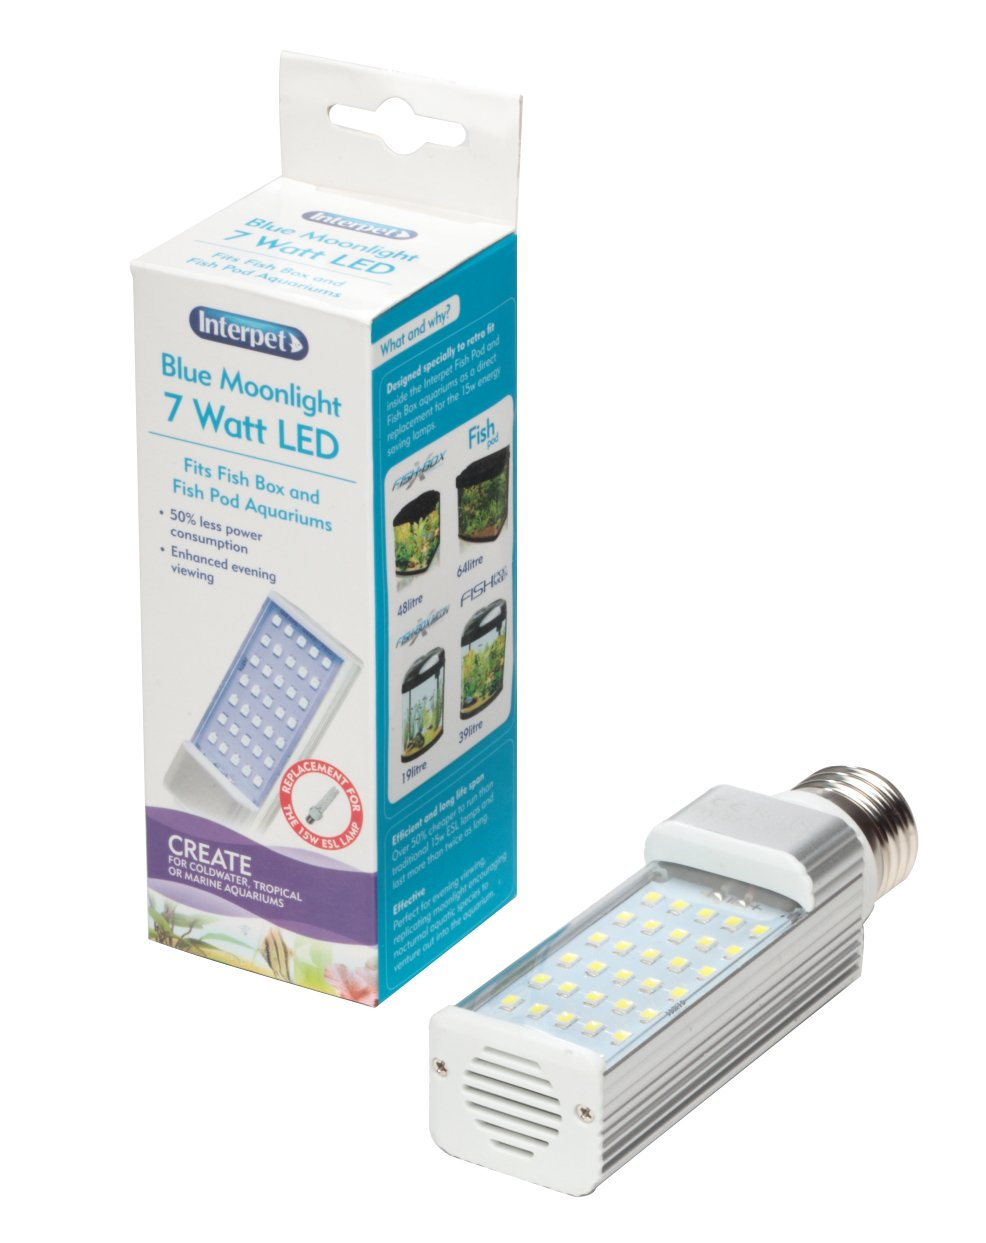 Interpet LED Energy Saving Lamp to Fit All Fish Pod and Fish Box Aquariums, 7 W - Blue Moonlight 51485